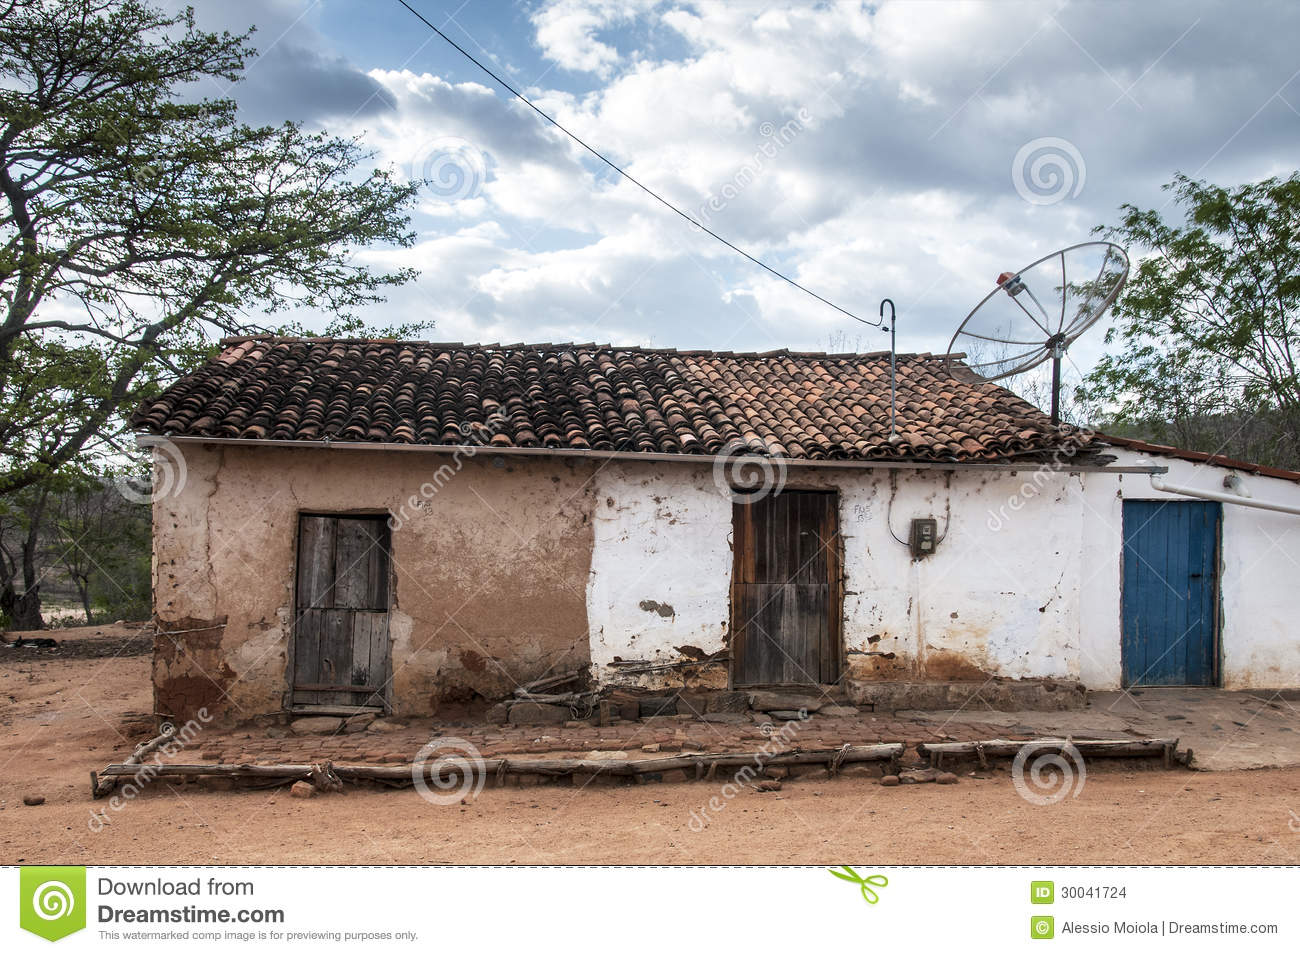 Mud House In Brazil Stock Images - Image: 30041724